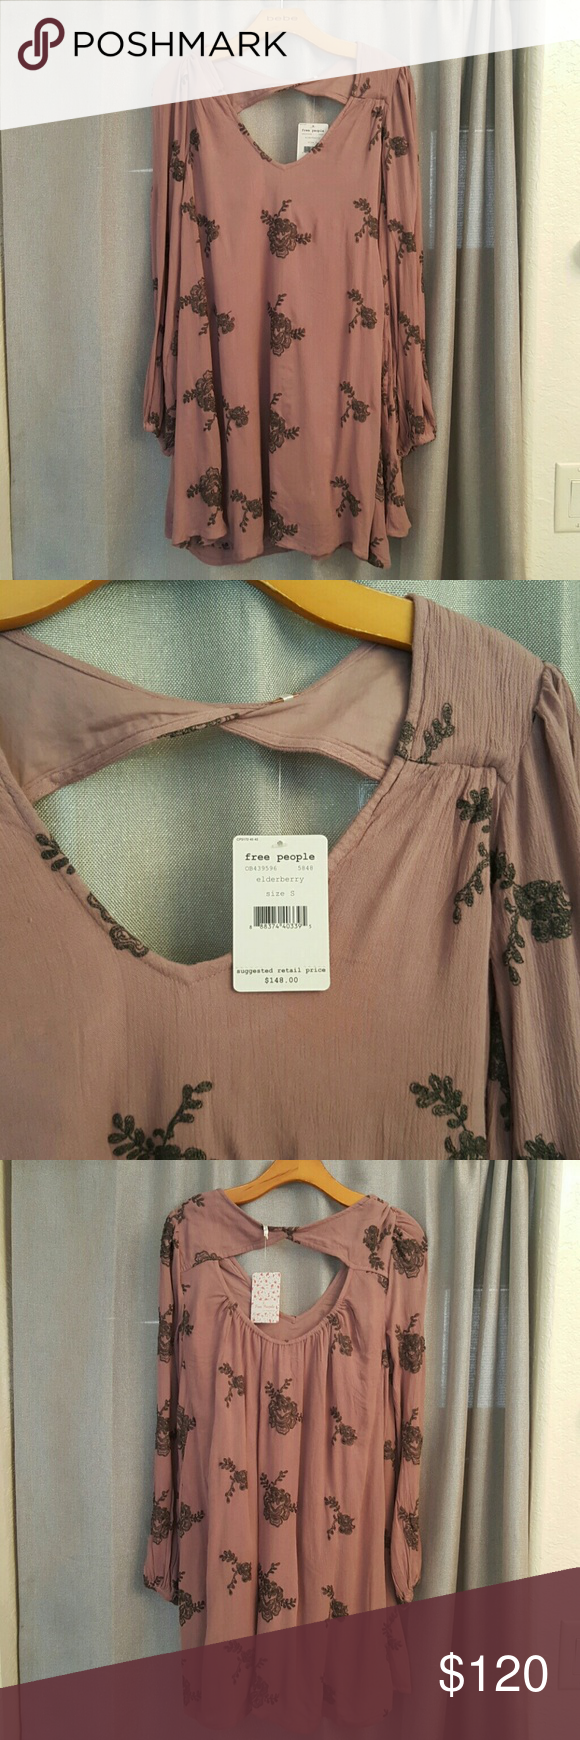 Free People Women's Emma Dress NWT! Never worn, Free People dress in the color elderberry.  Become a boho beauty in this trendy dress! Free People Dresses Long Sleeve